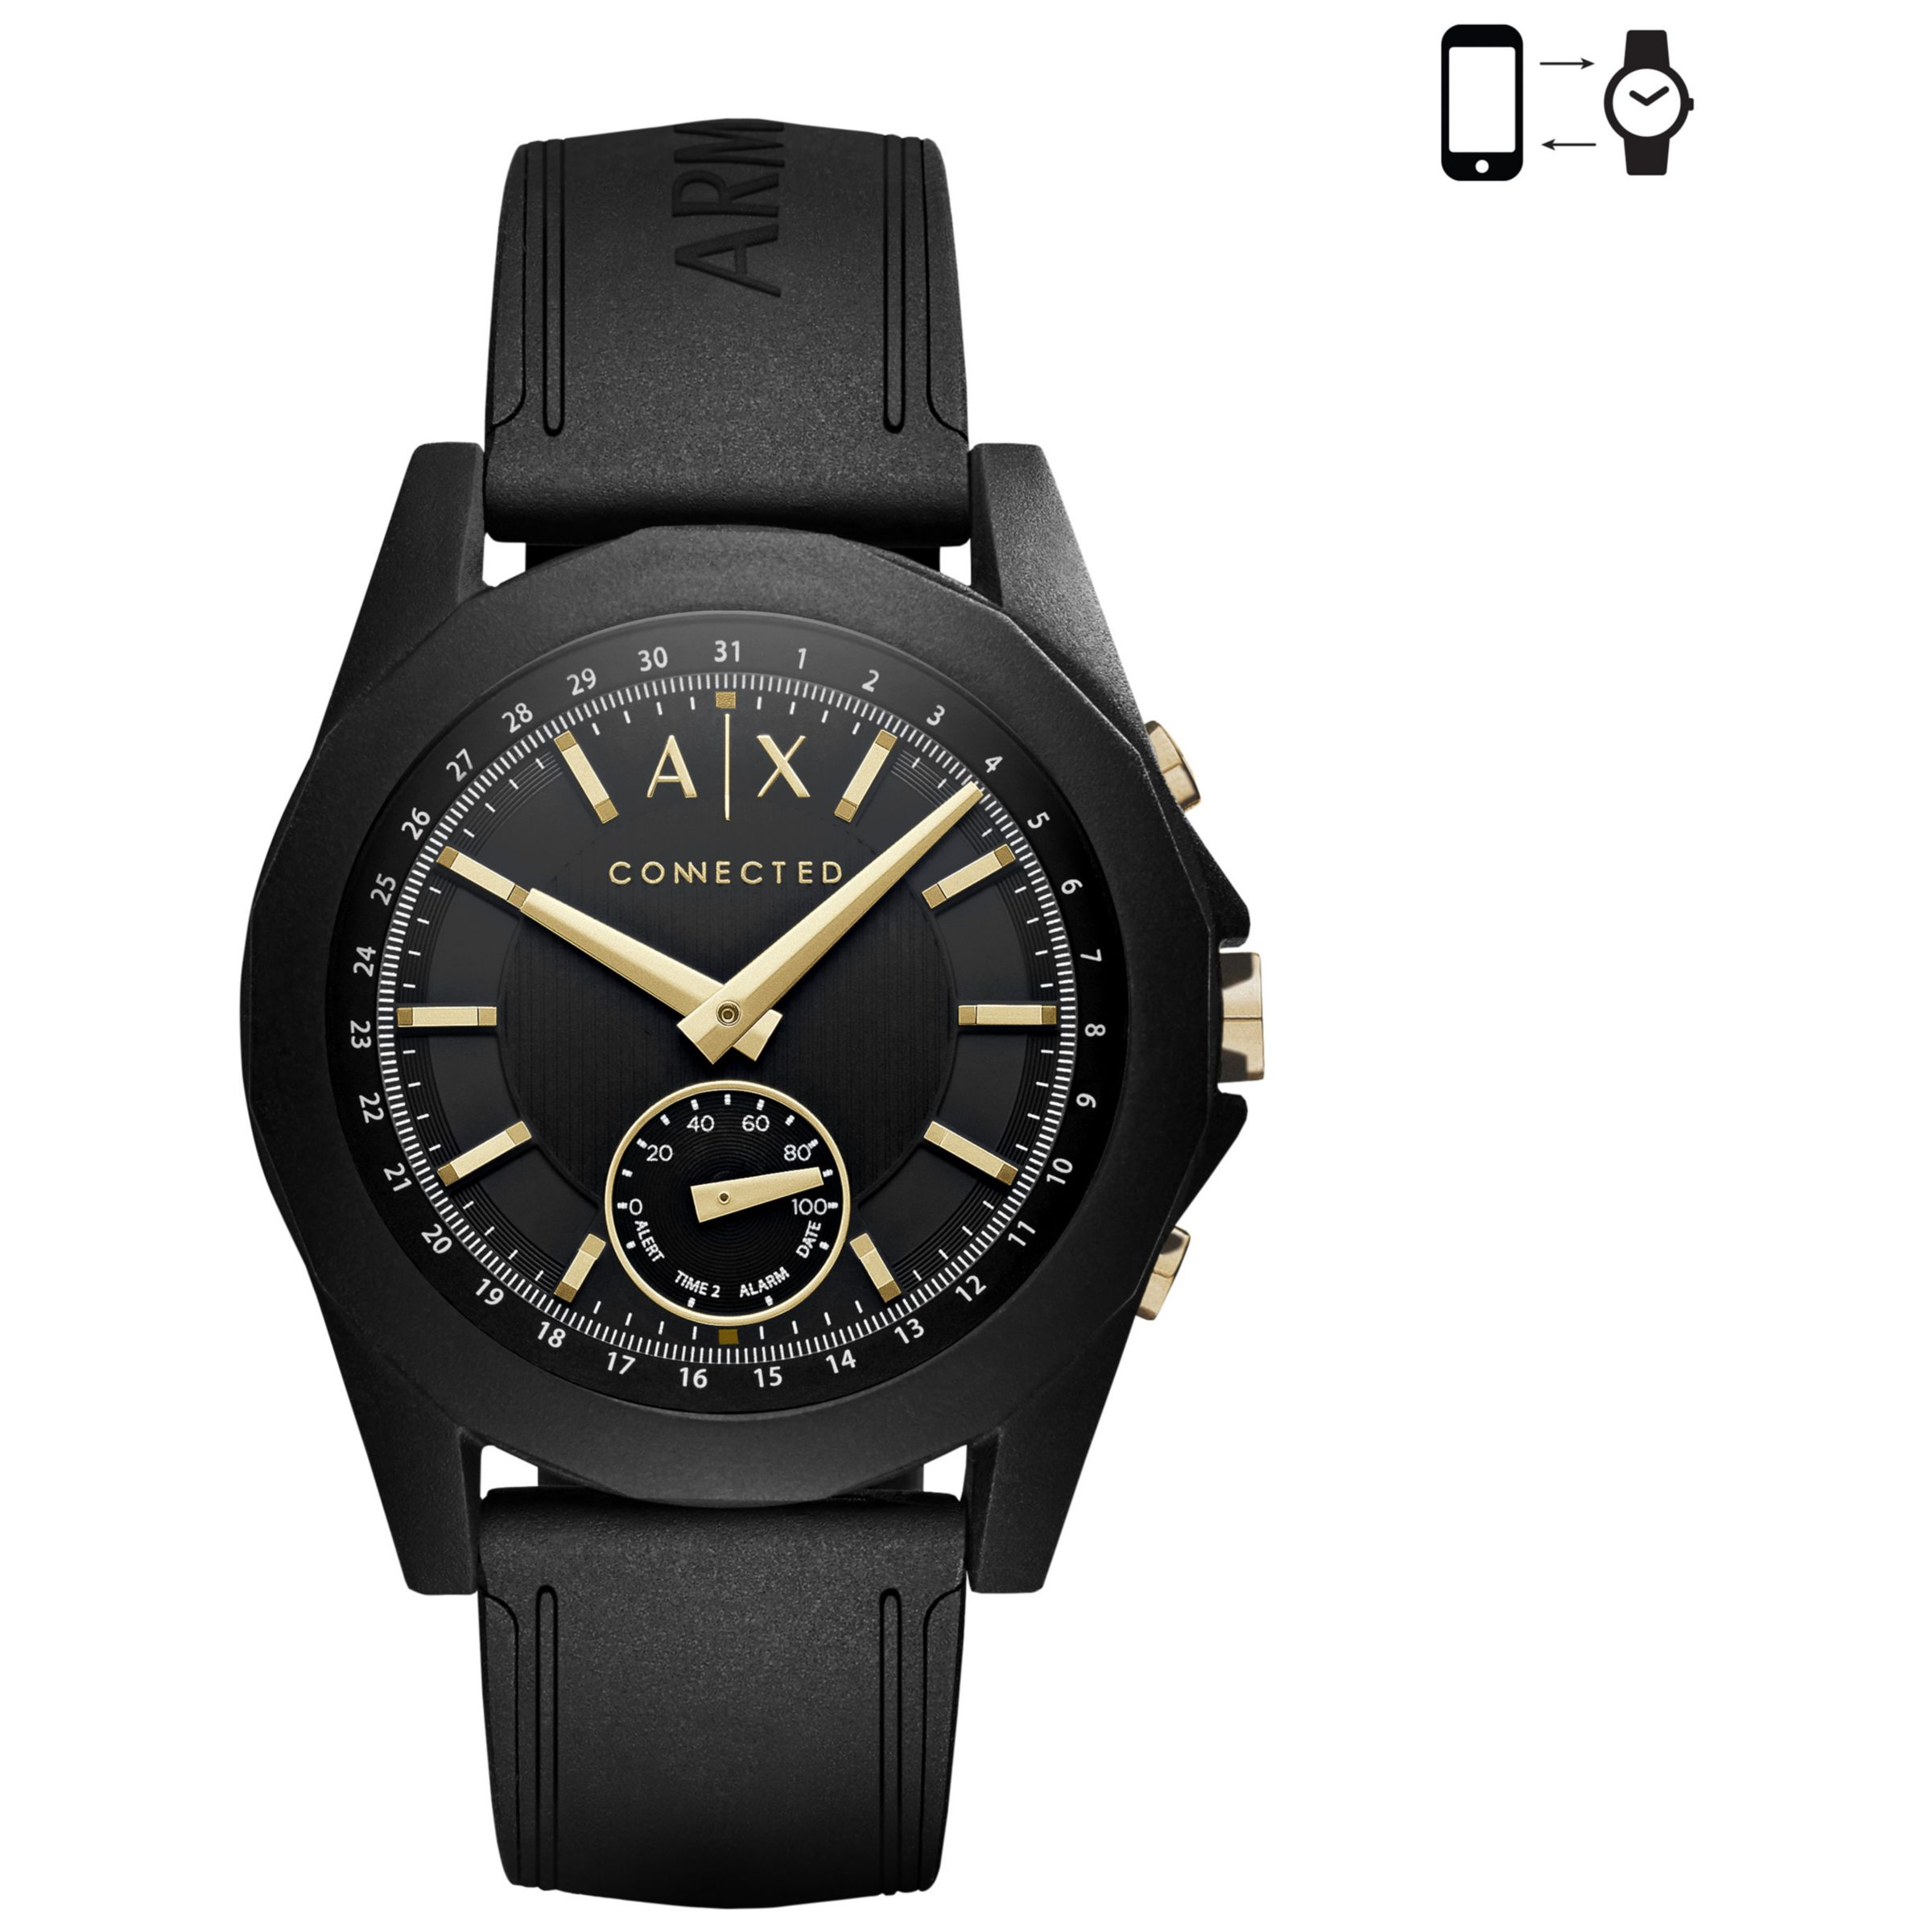 Armani Exchange Armani Exchange Connected Men's Hybrid Silicone Strap Smartwatch